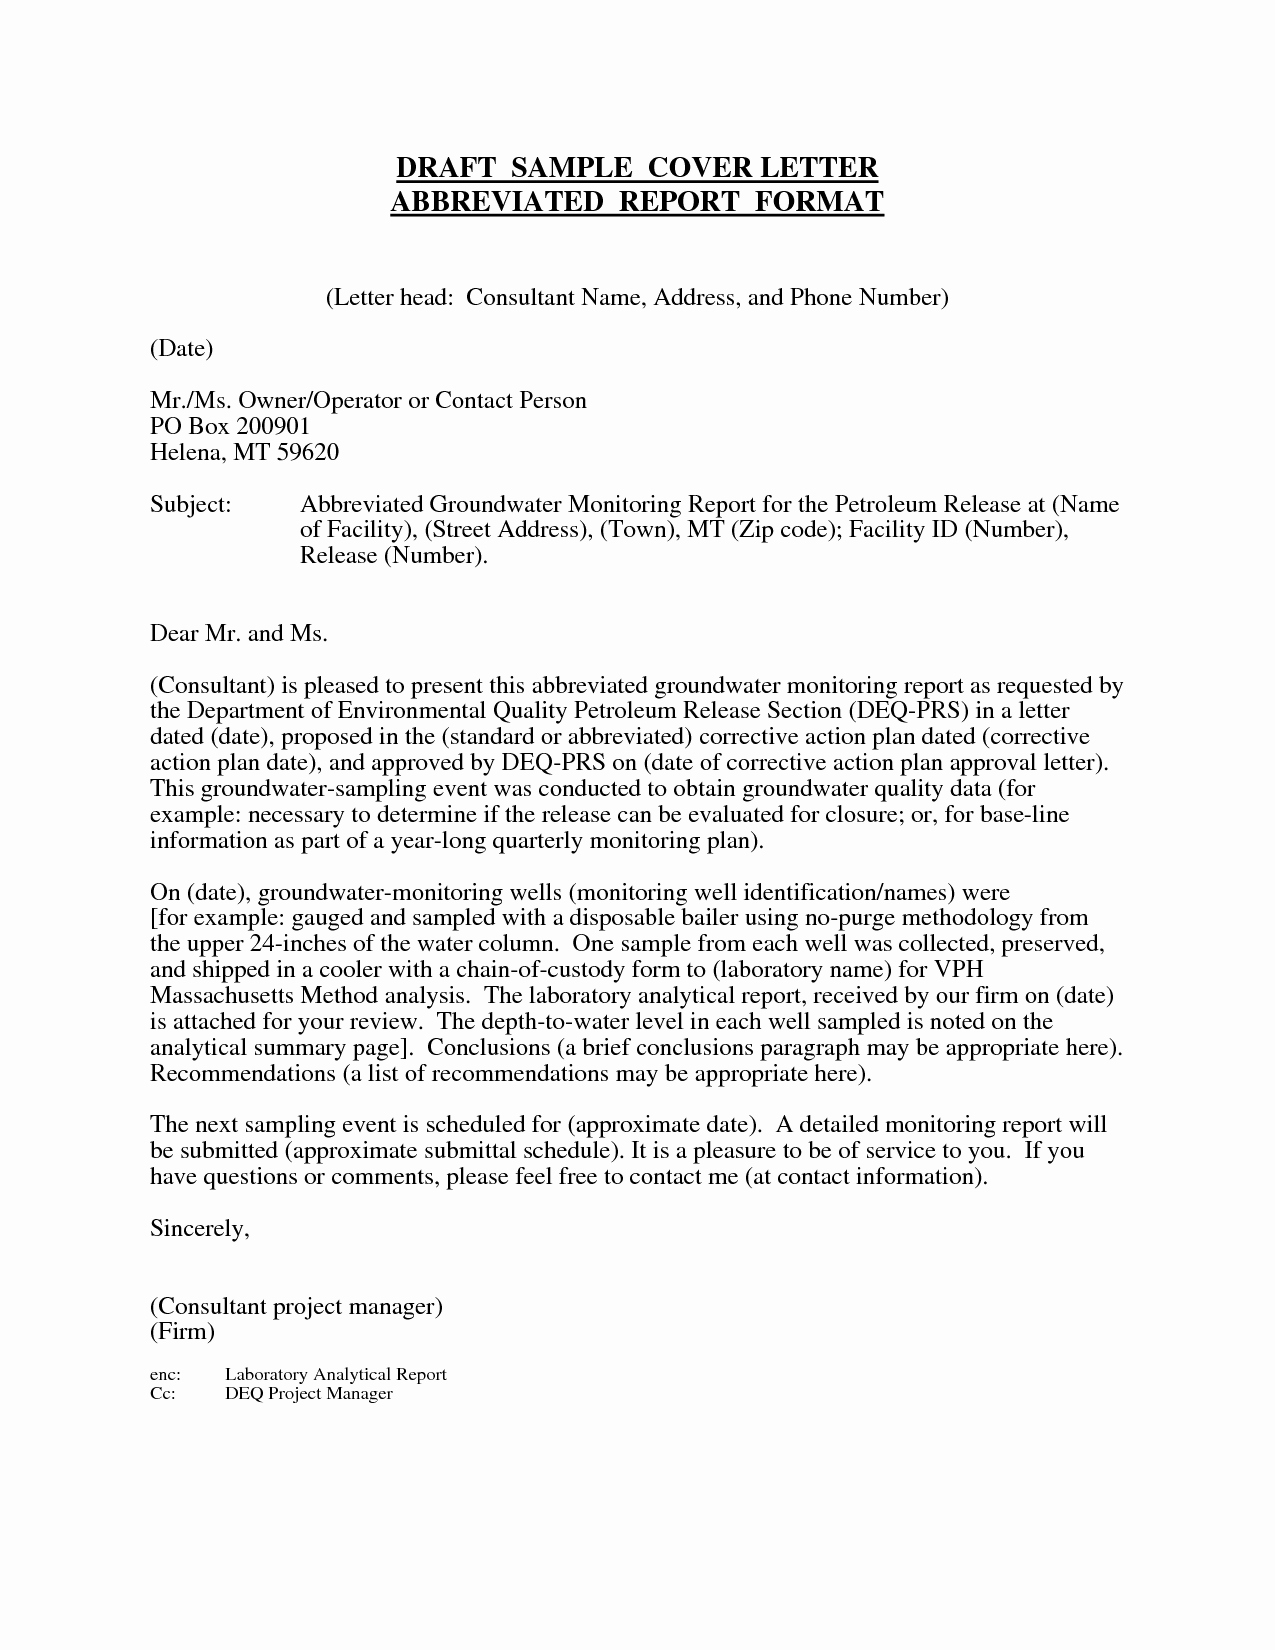 Cover Letter for Essay Template - Resume Cover Letter Tips New Resume Cover Letter Header B C7 O D